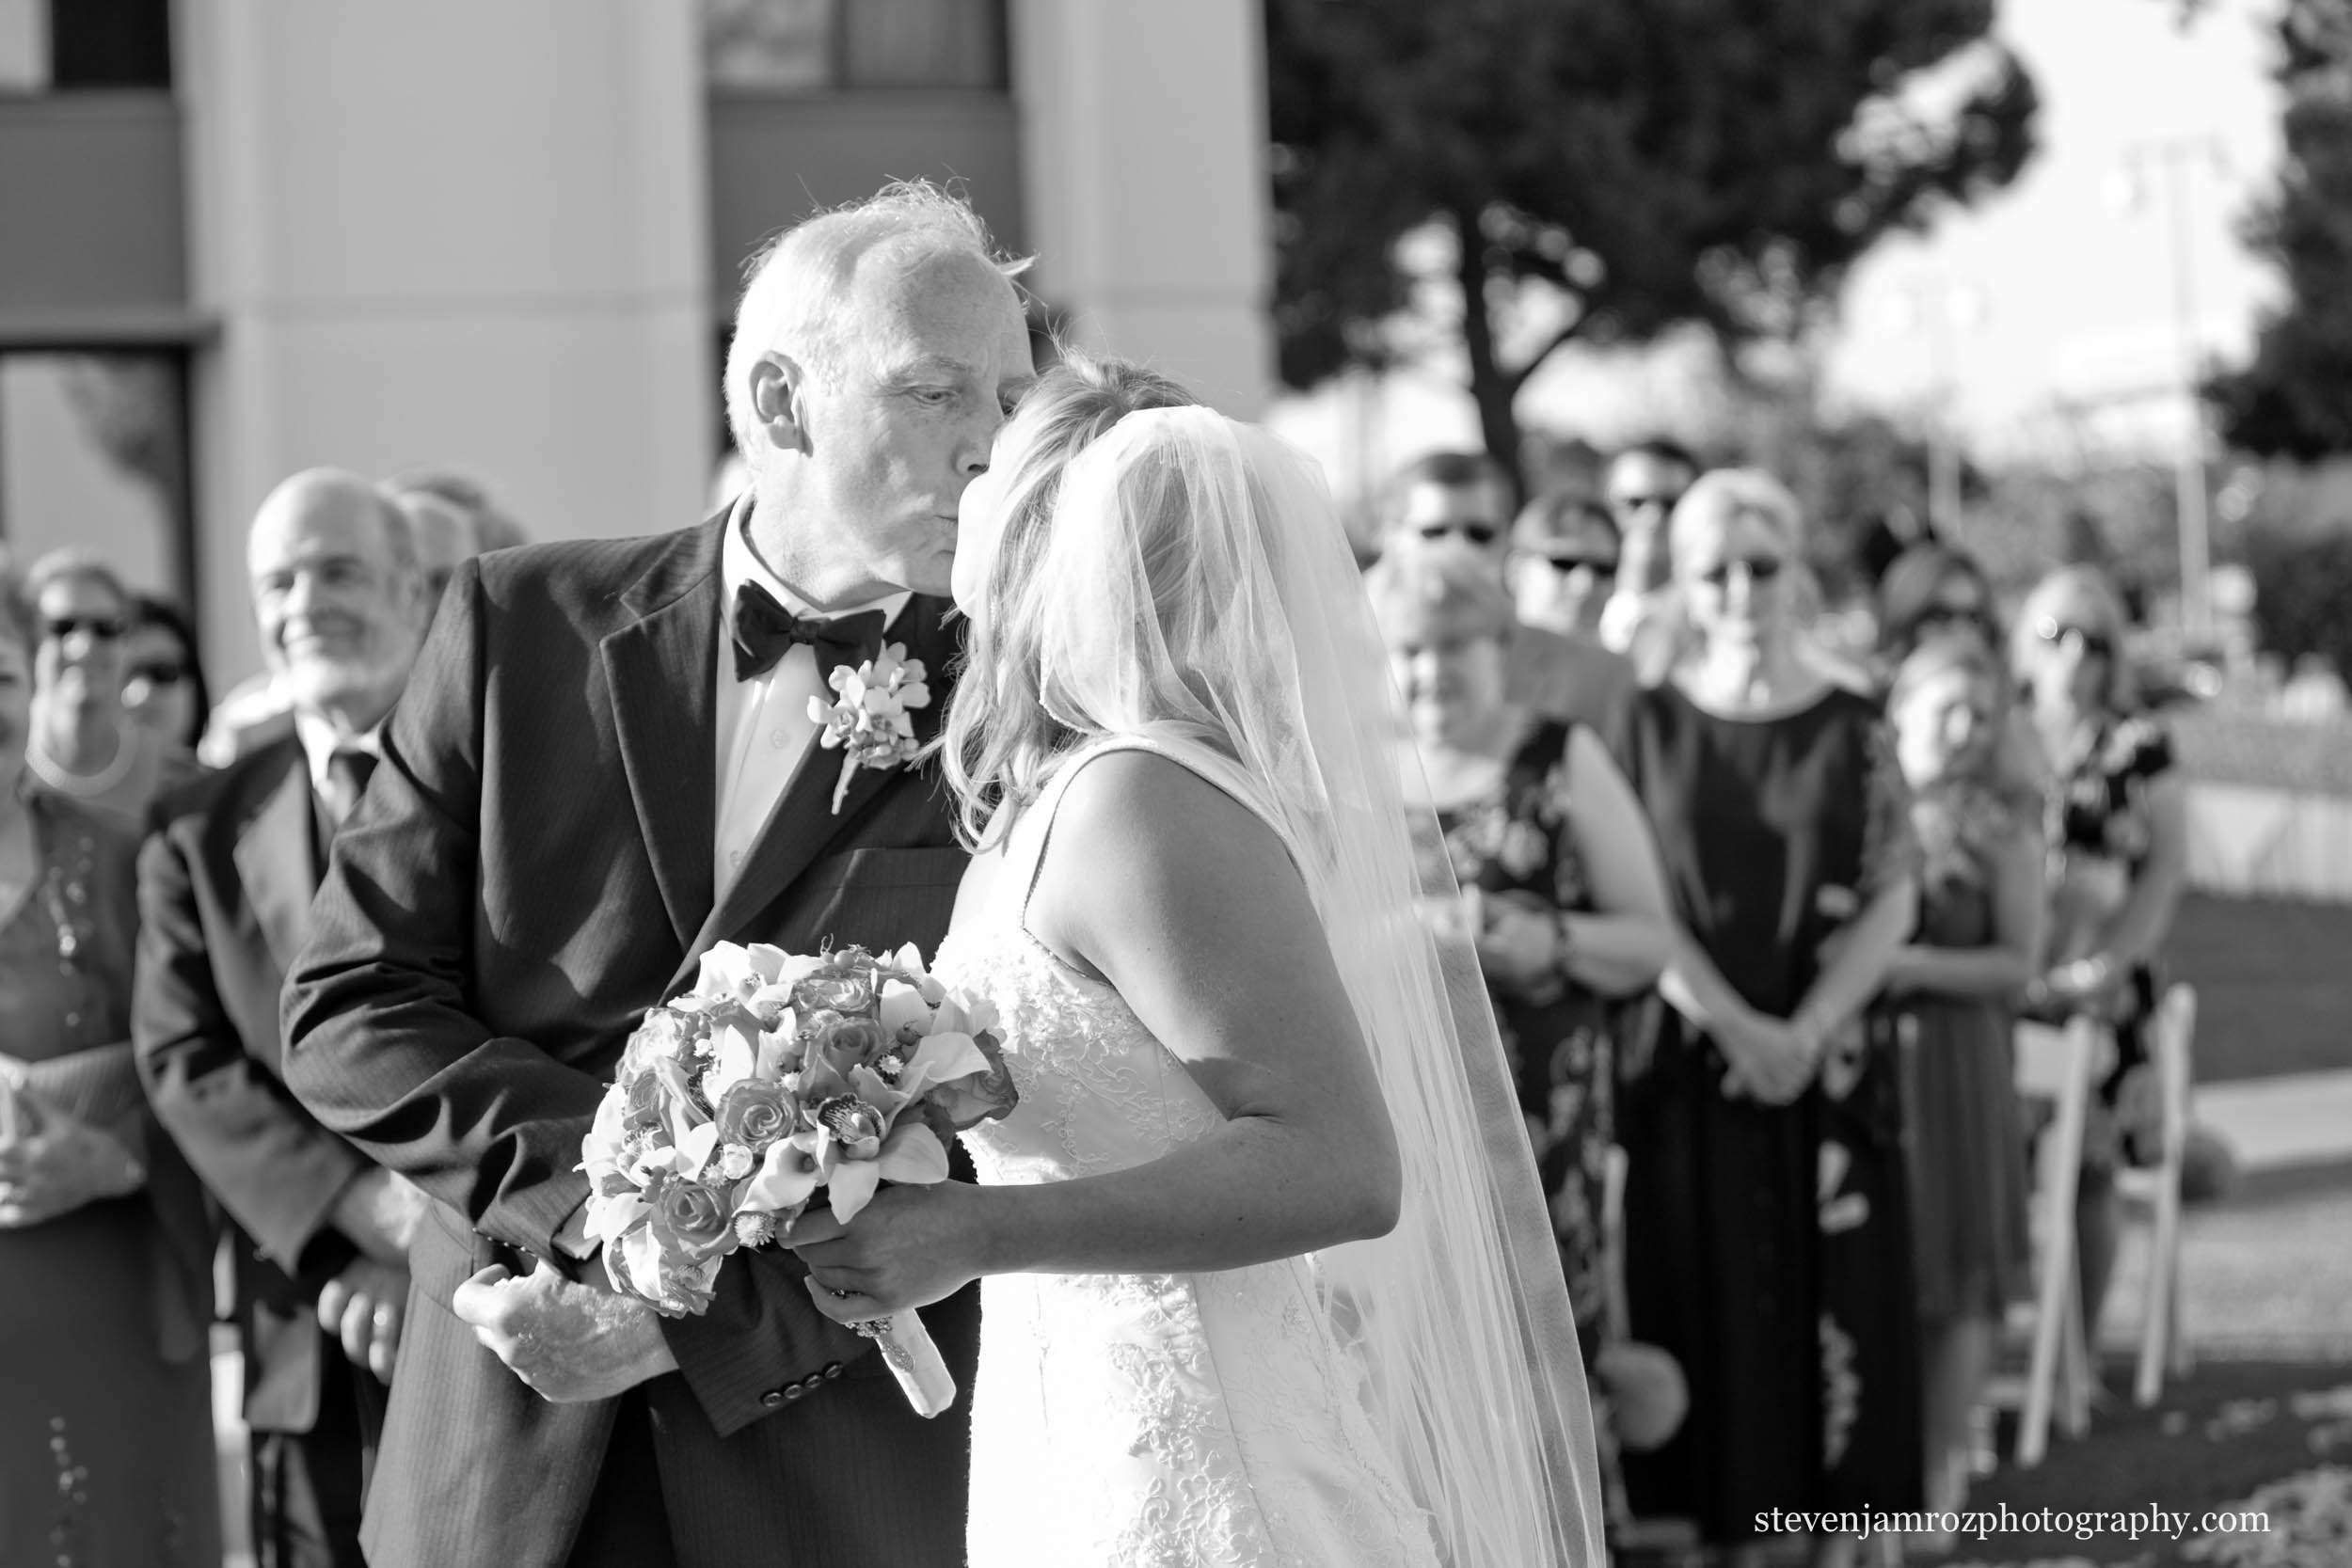 dad-kisses-bride-give-away-to-groom-steven-jamroz-photography-0512.jpg